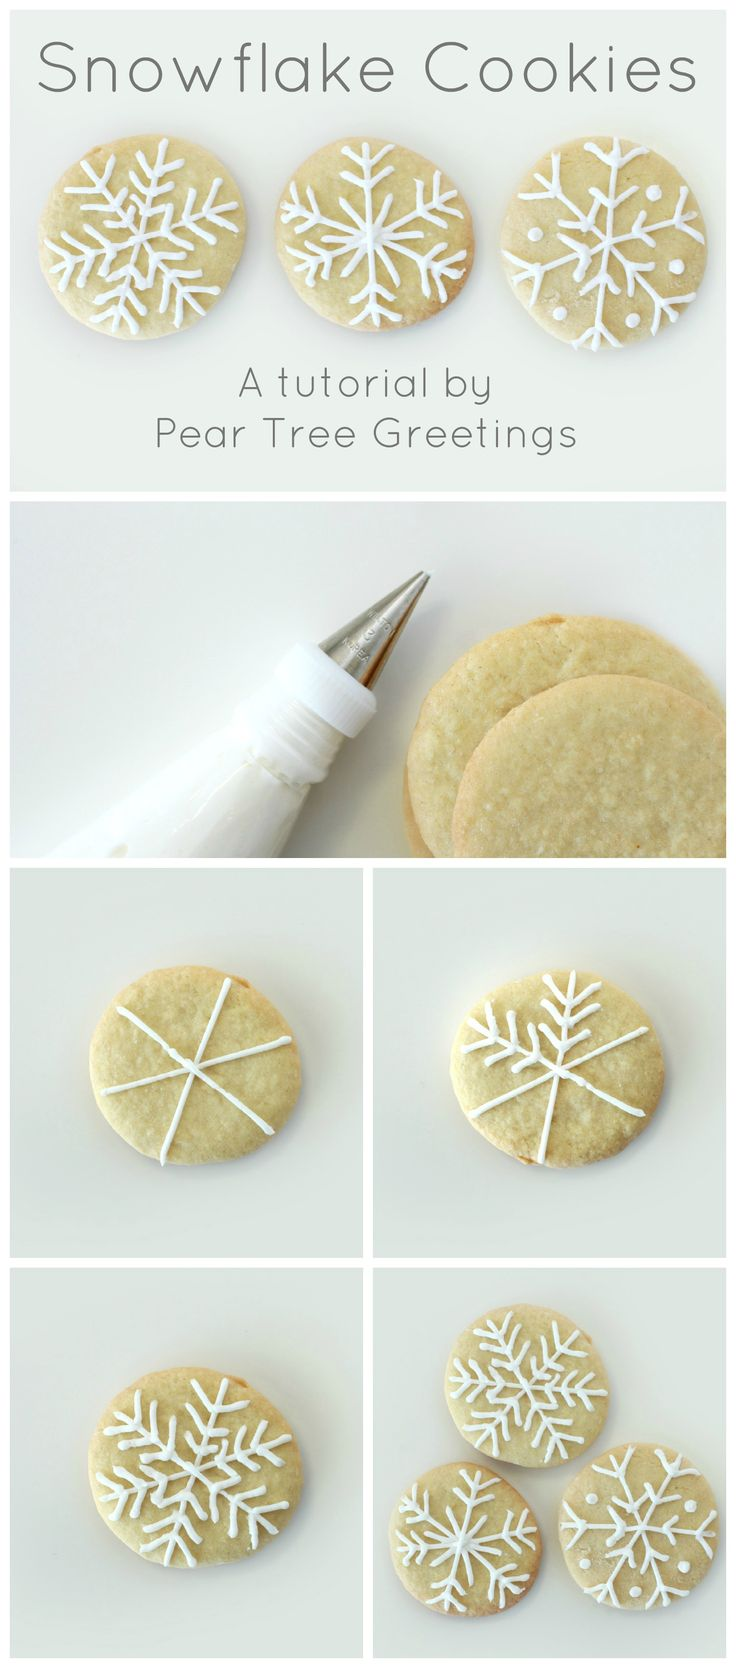 Learn how to make a these snowflake Christmas cookies that are sure to impress your family! http://www.peartreegreetings.com/blog/2014/12/how-to-make-snowflake-christmas-cookies/